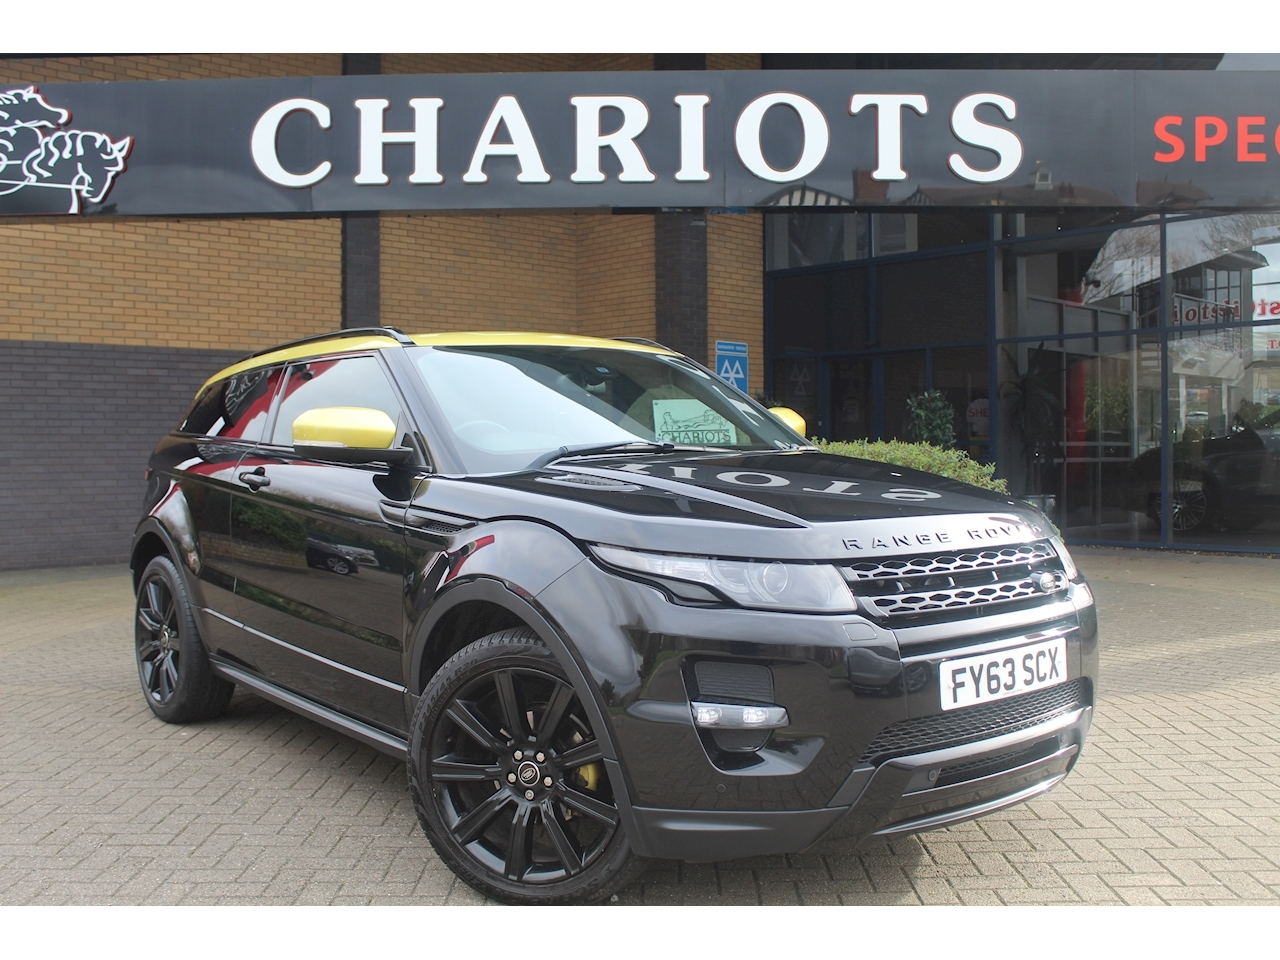 Range Rover Evoque Sd4 Sicilian Yellow Coupe 2.2 Automatic Diesel